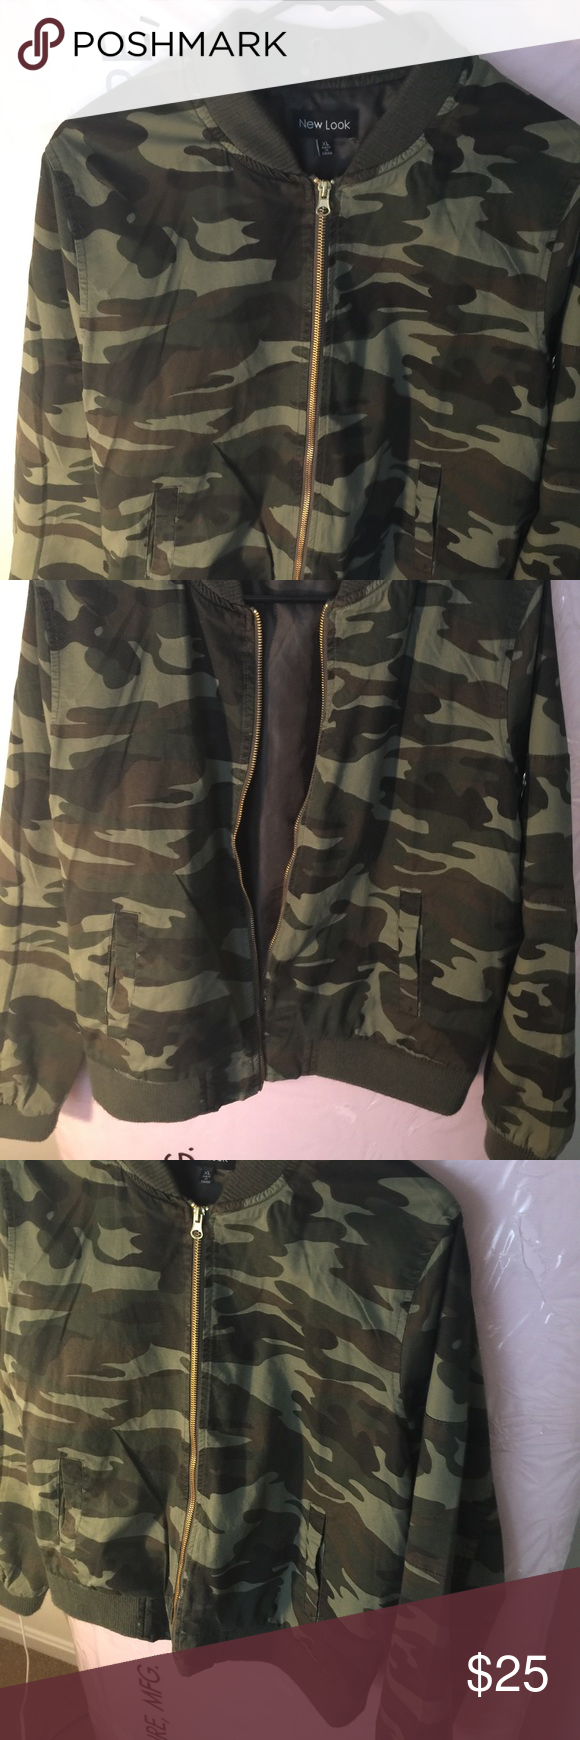 New army bomber jacket military